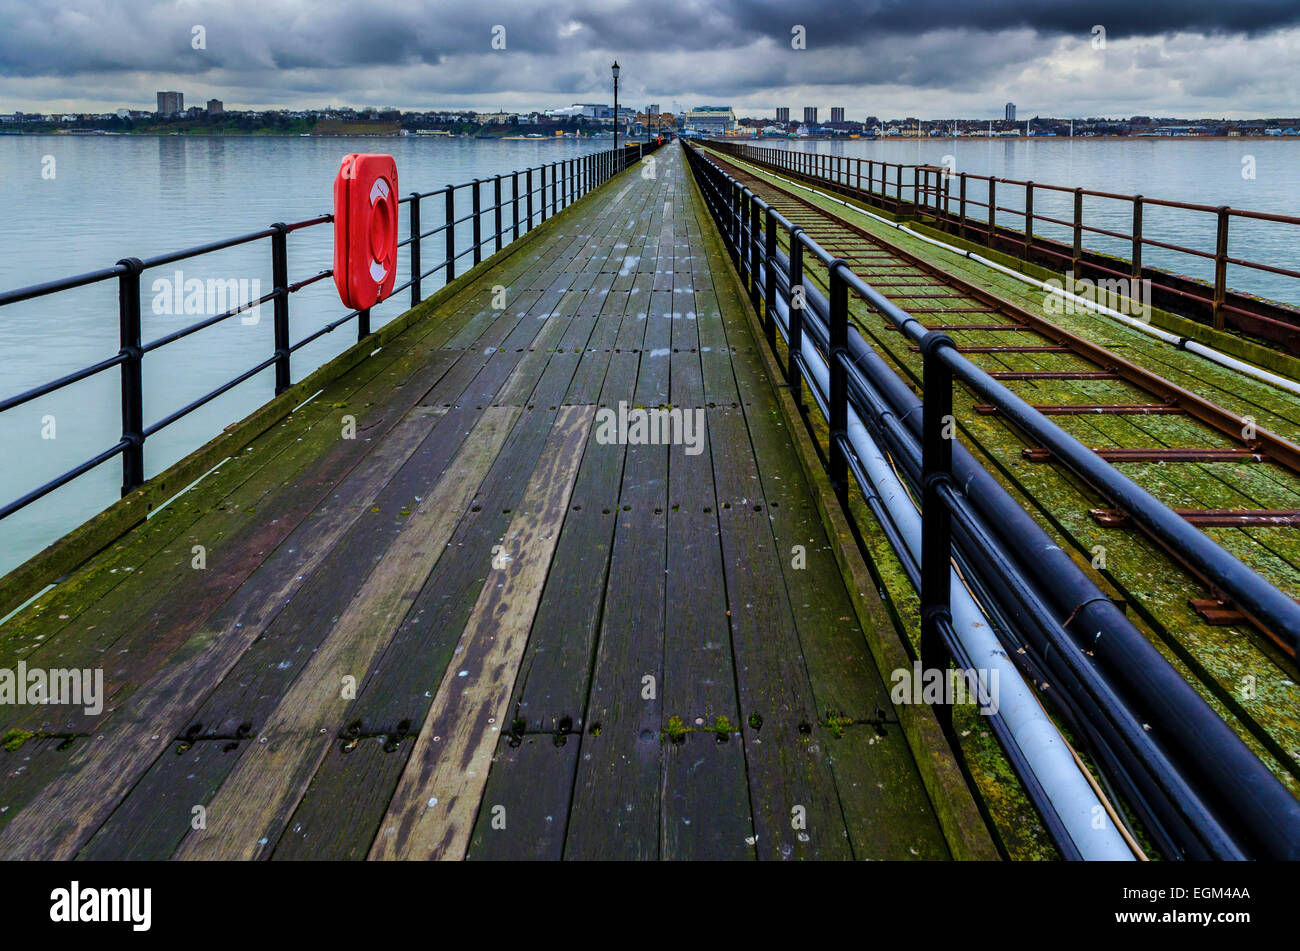 Southend Pier, The Longest Pier in the World, Southend-on-Sea, Essex - Stock Image